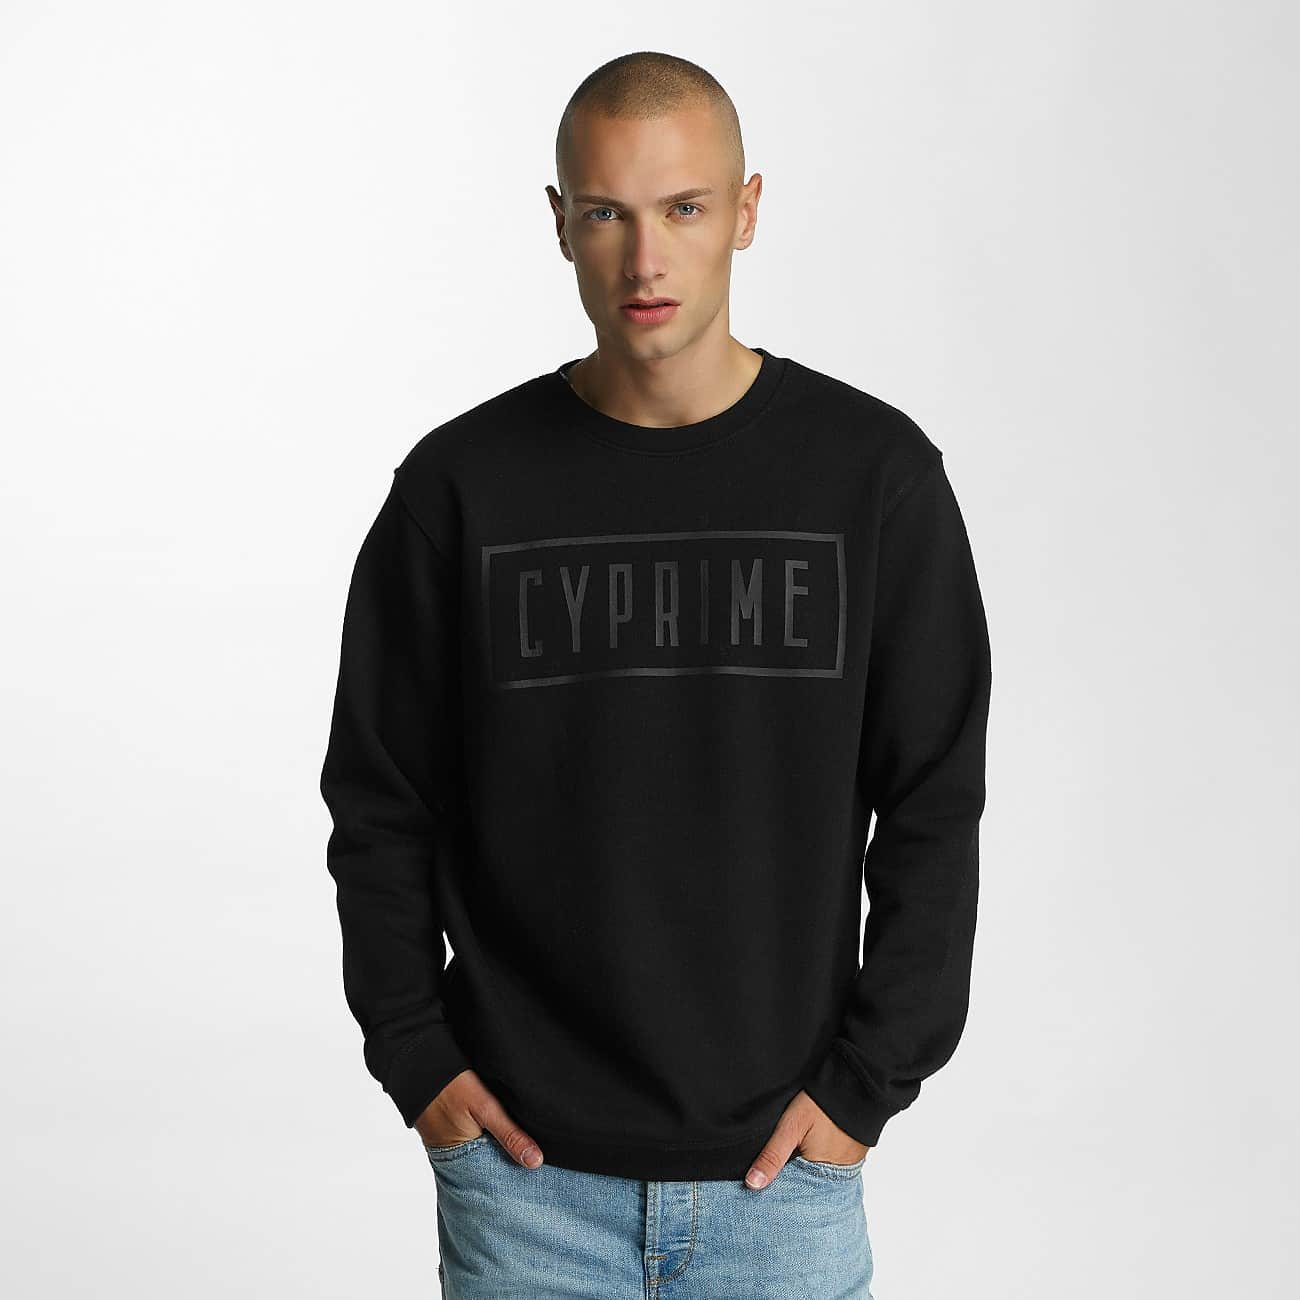 Cyprime / Jumper Zirconium in black - Streetscenter